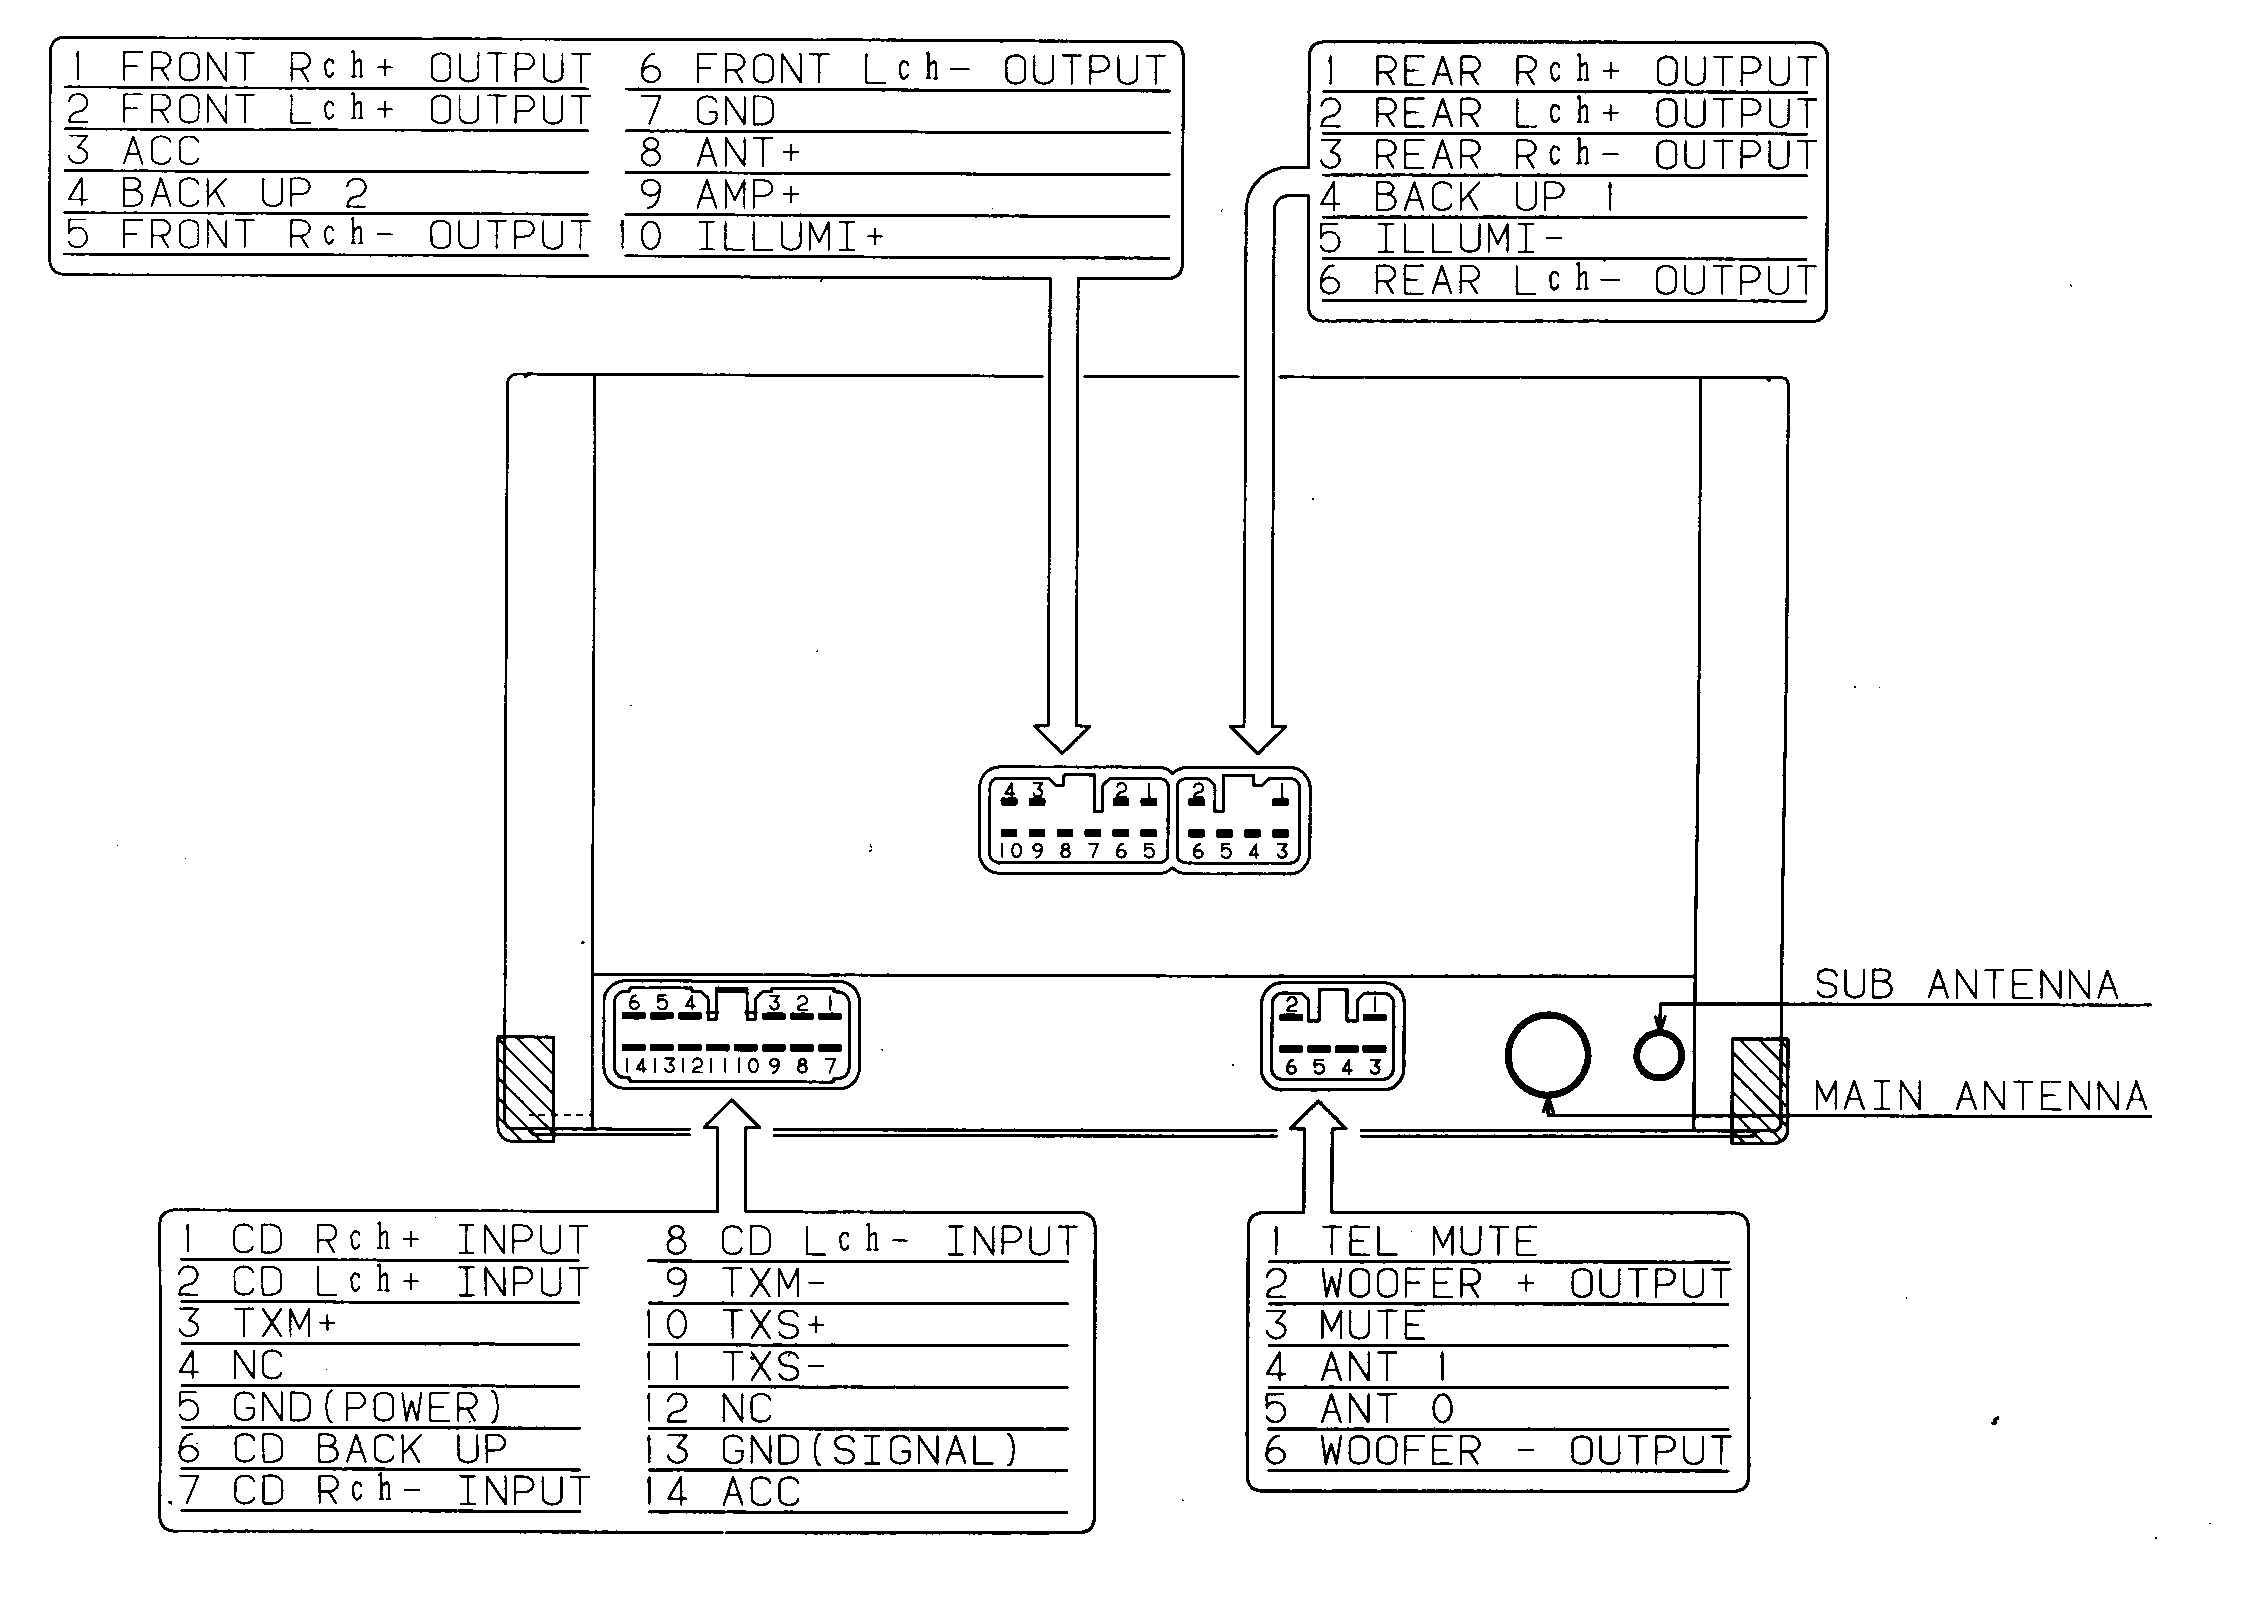 lexus lx470 fuse box wiring diagramsc400 fuse box wiring diagram